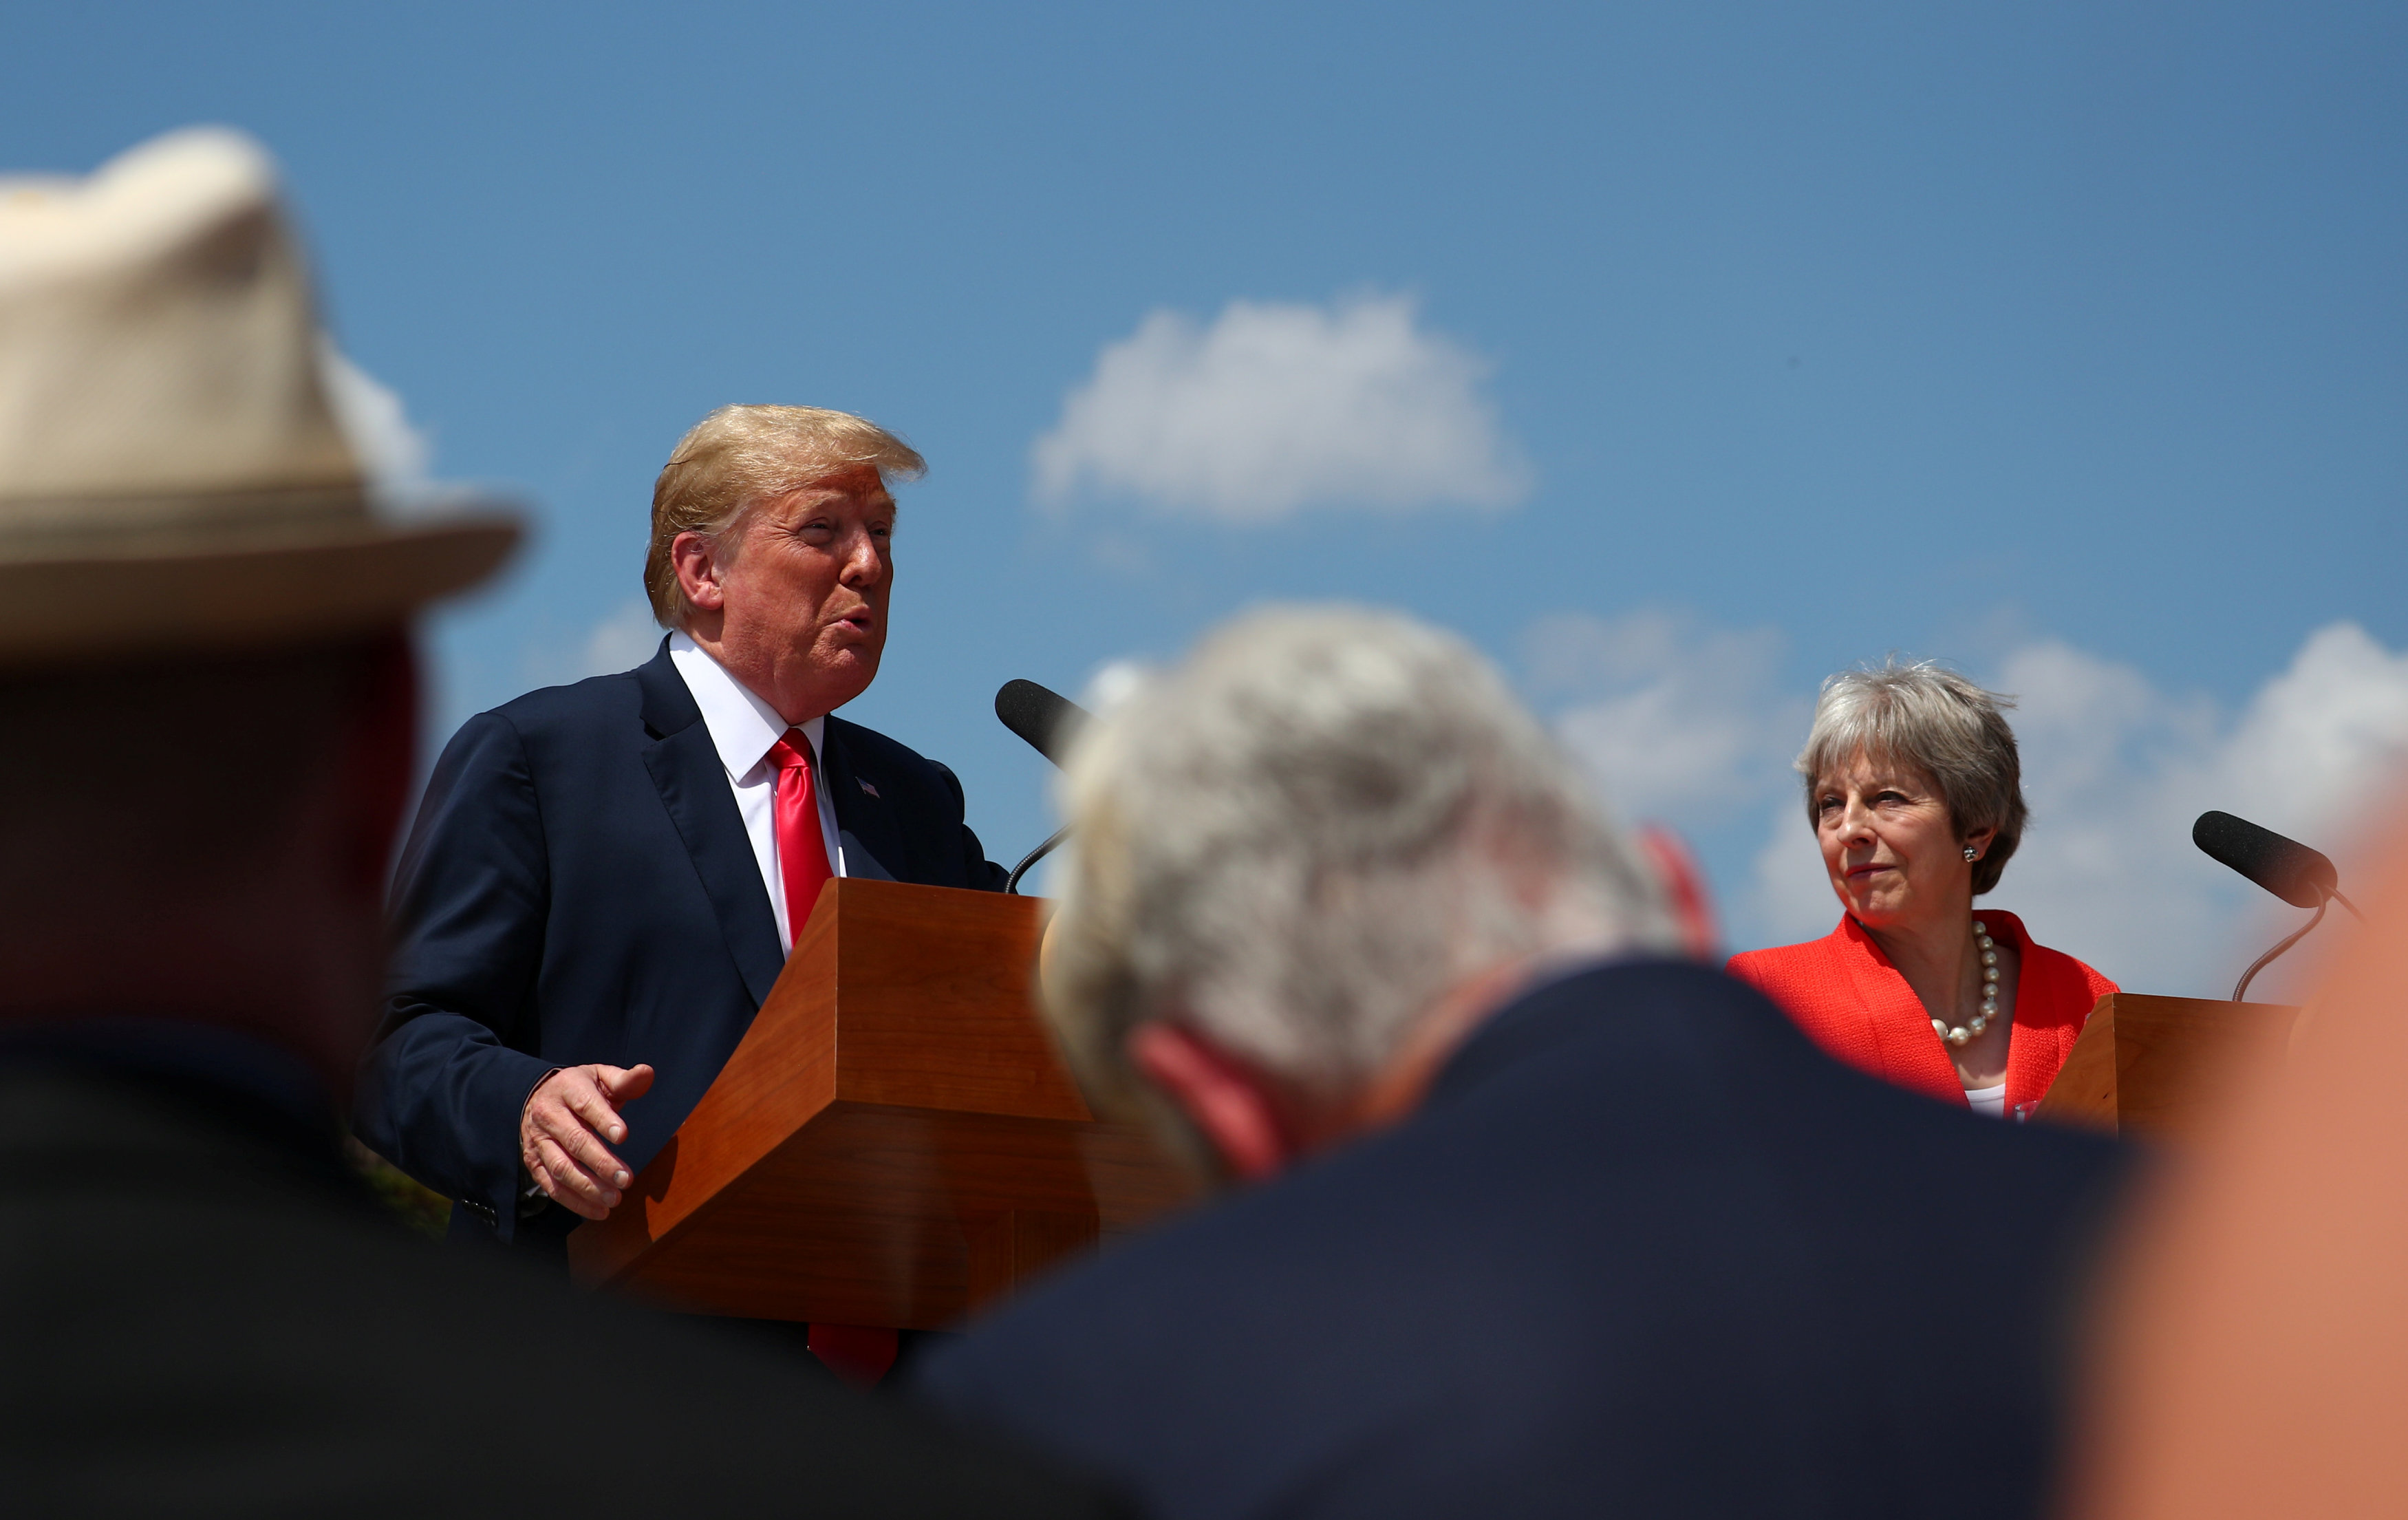 Britain's Prime Minister Theresa May and U.S. President Donald Trump hold a joint news conference at Chequers, the official country residence of the Prime Minister, near Aylesbury, Britain, July 13, 2018. REUTERS/Hannah McKay